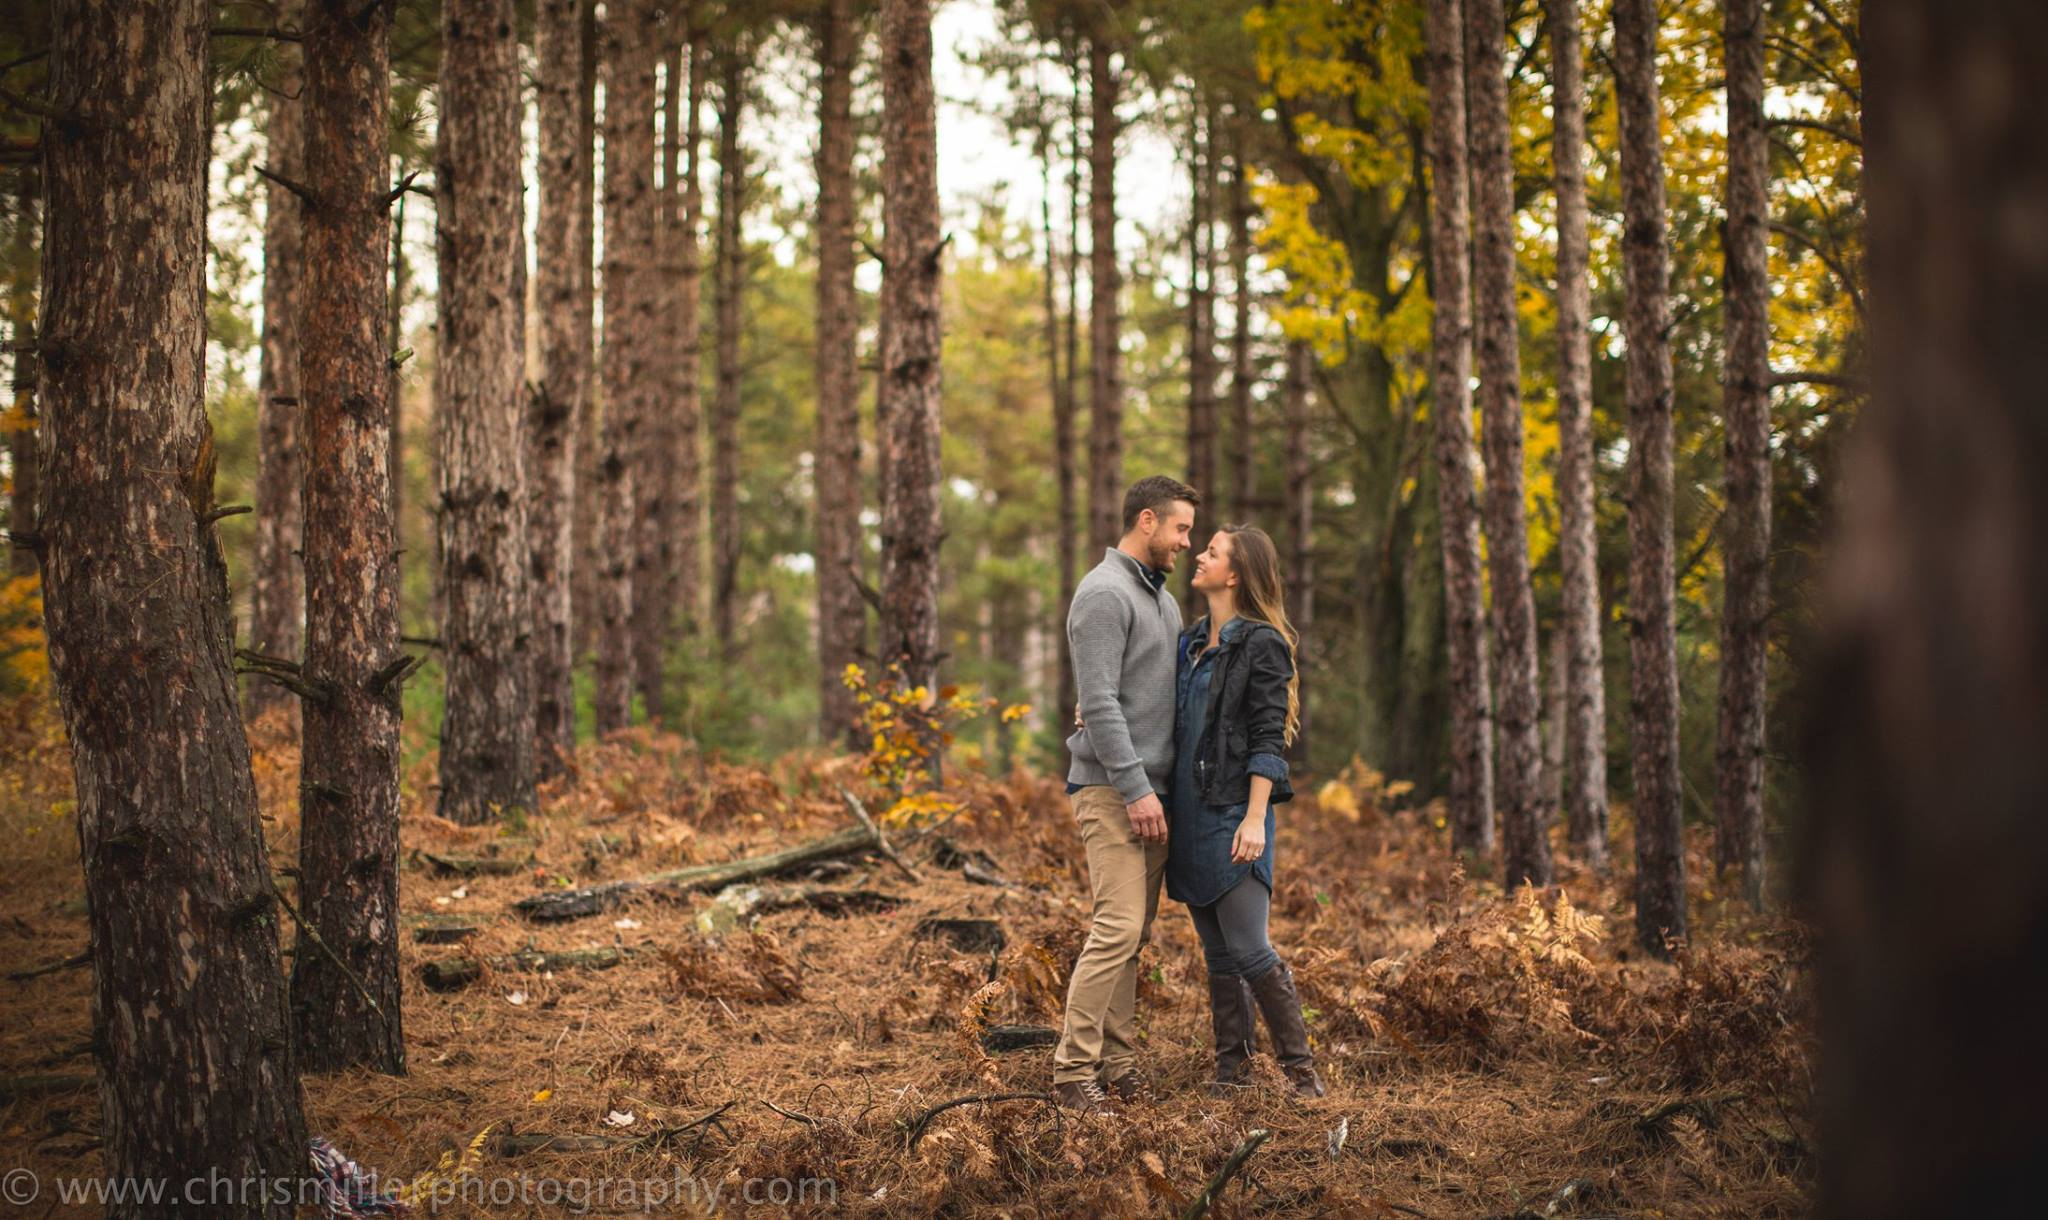 11 Romantic Places to Get Engaged in Wisconsin